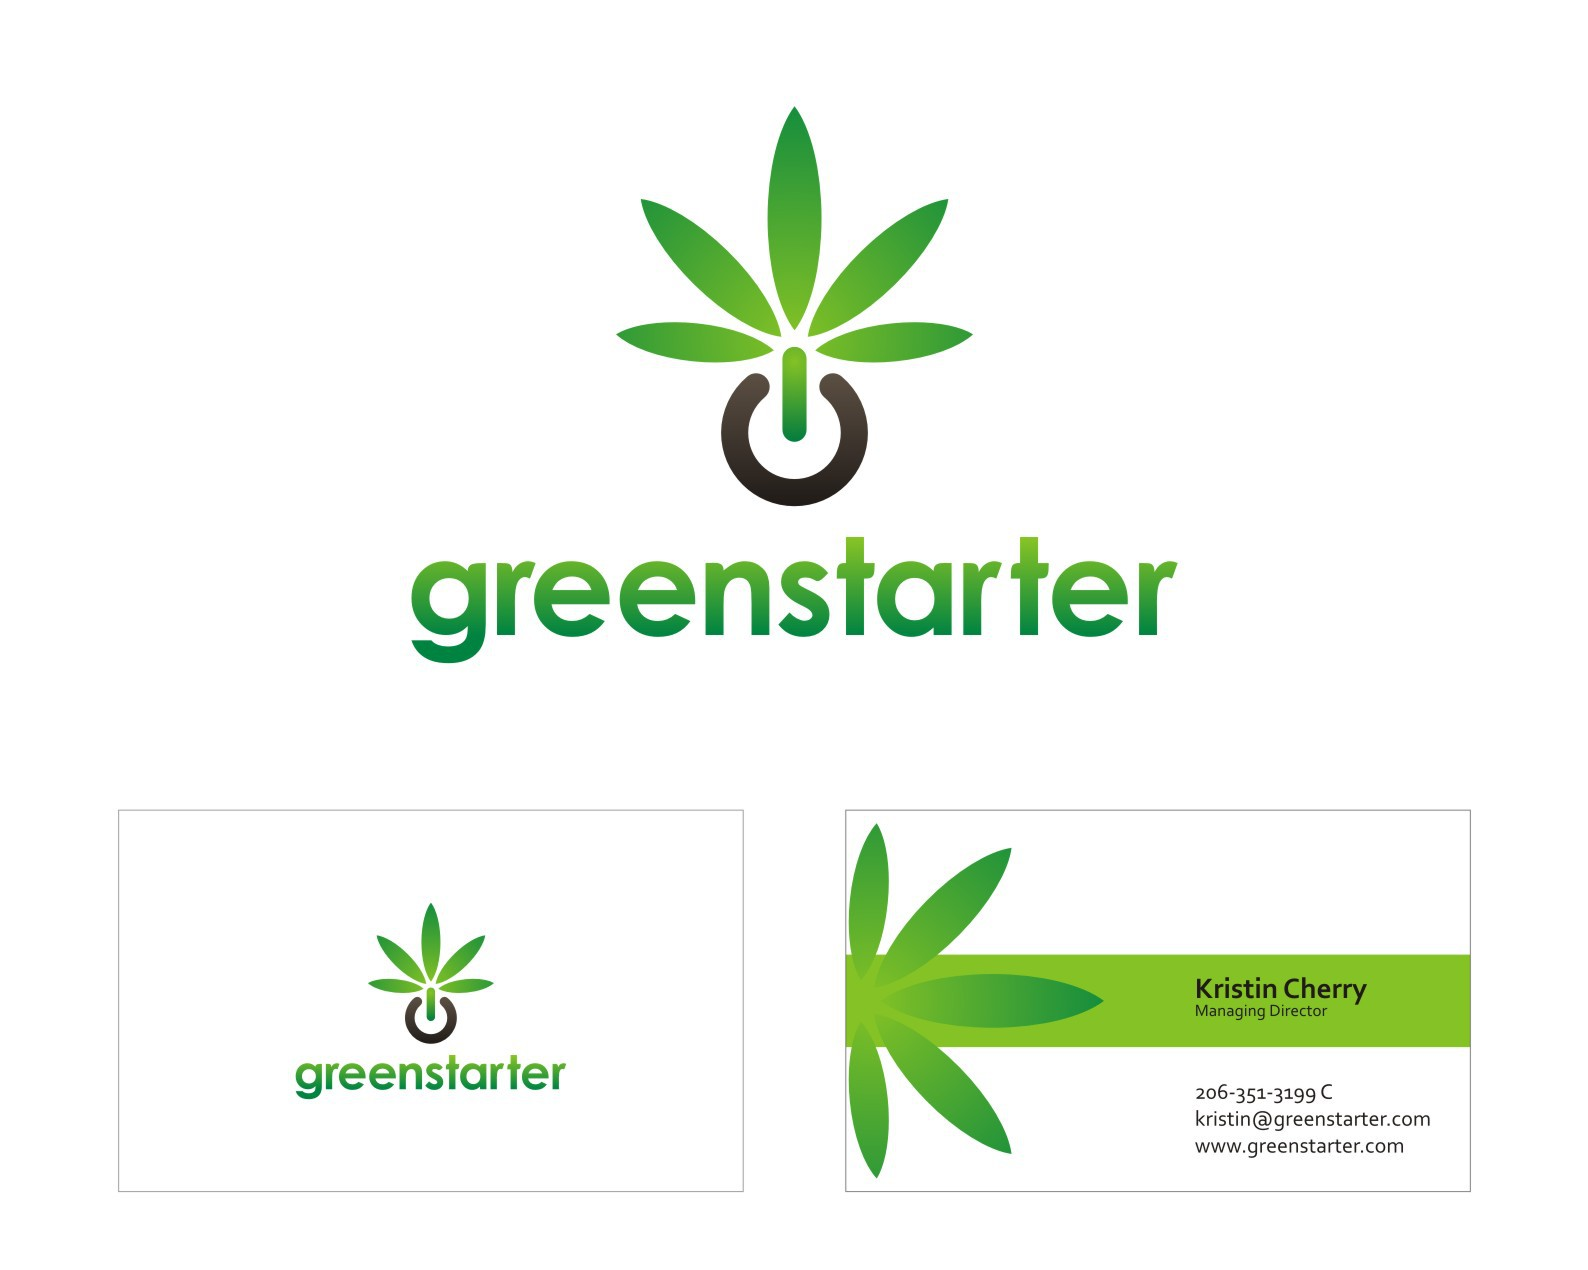 GREENSTARTER needs a logo for our cannabis startup consulting firm